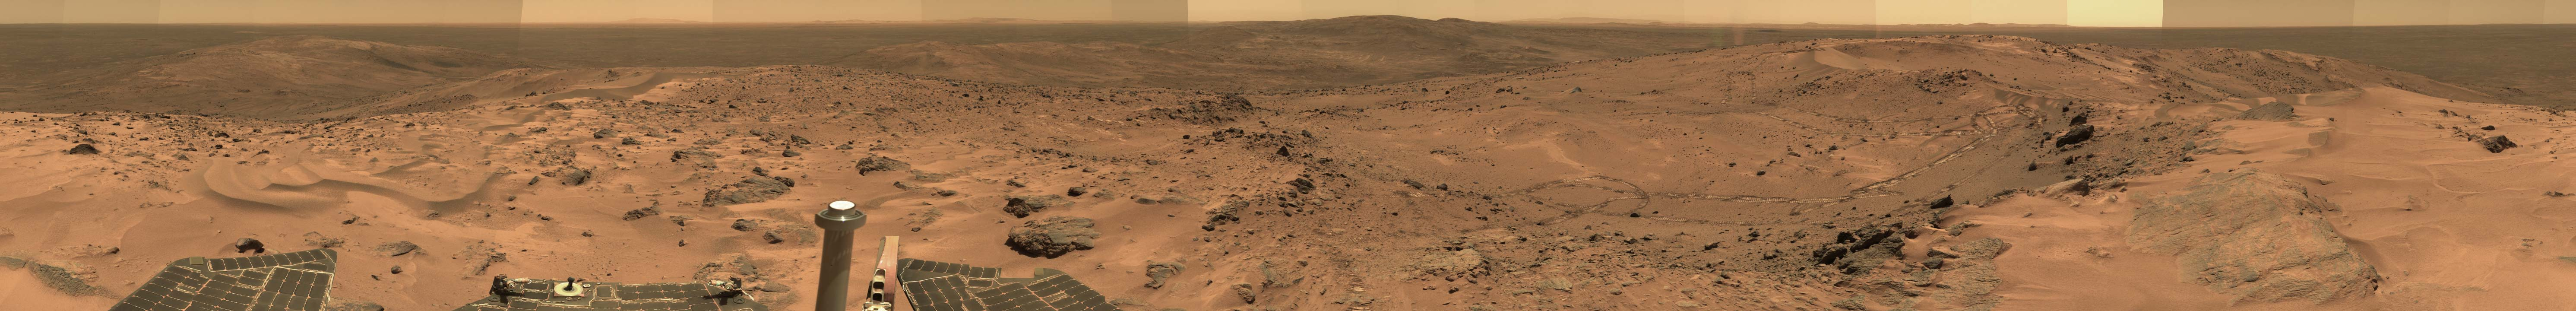 APOD: 2013 December 8 - Everest Panorama from Mars